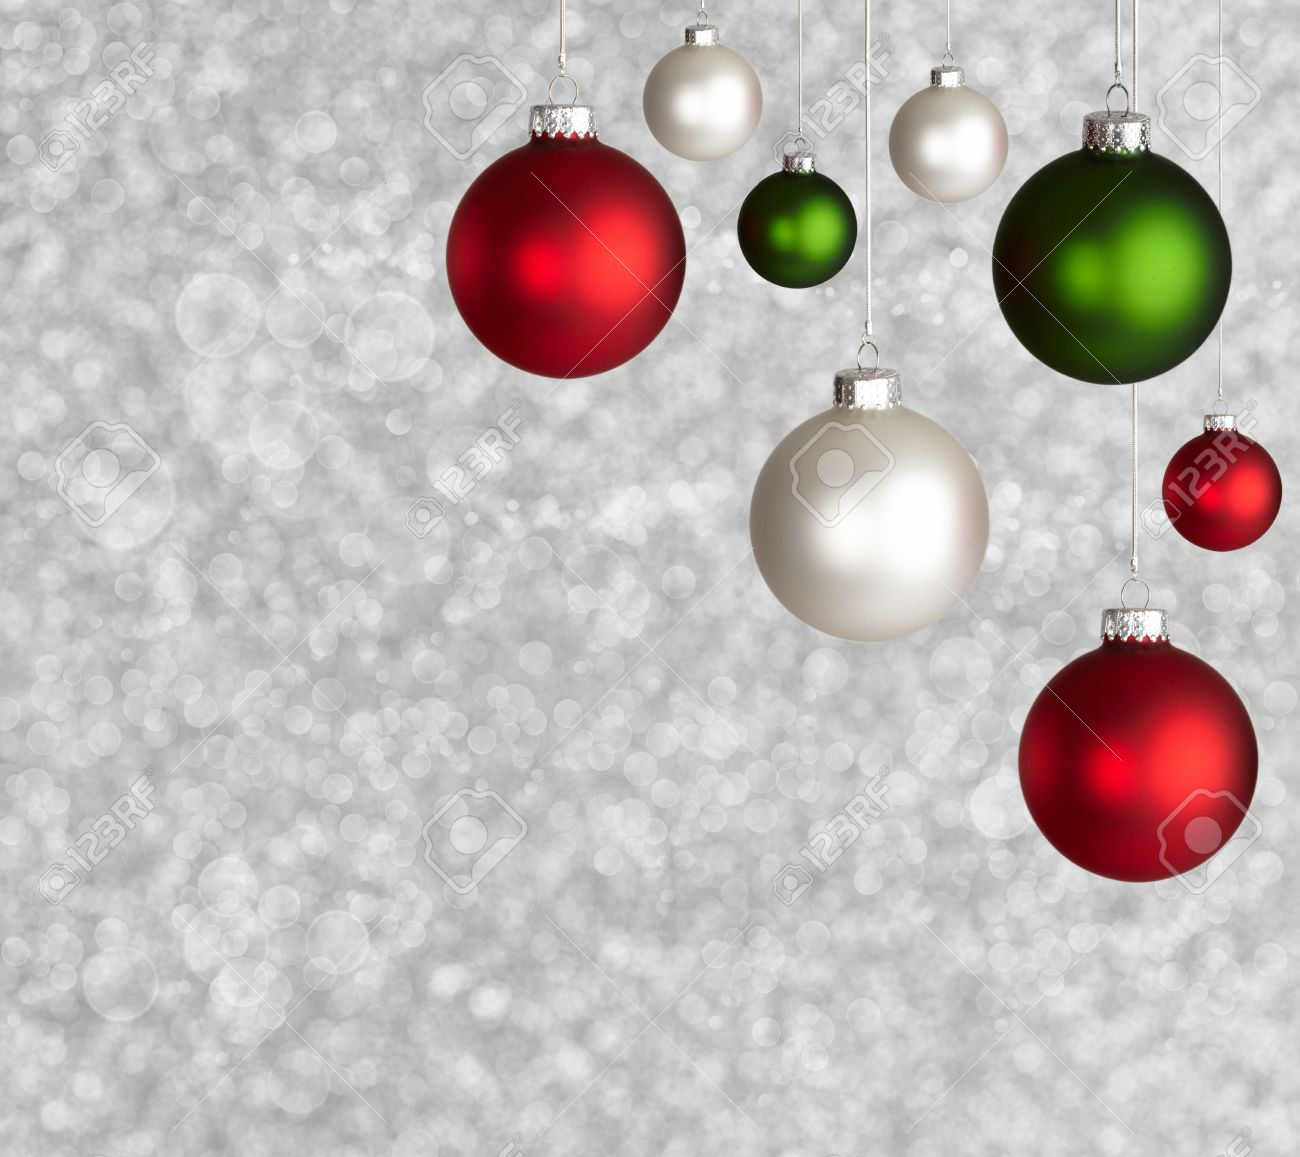 Red green and white christmas ornaments - Stock Photo White Red And Green Christmas Ball Ornaments On Sparkely Silver Defocused Bokeh Background